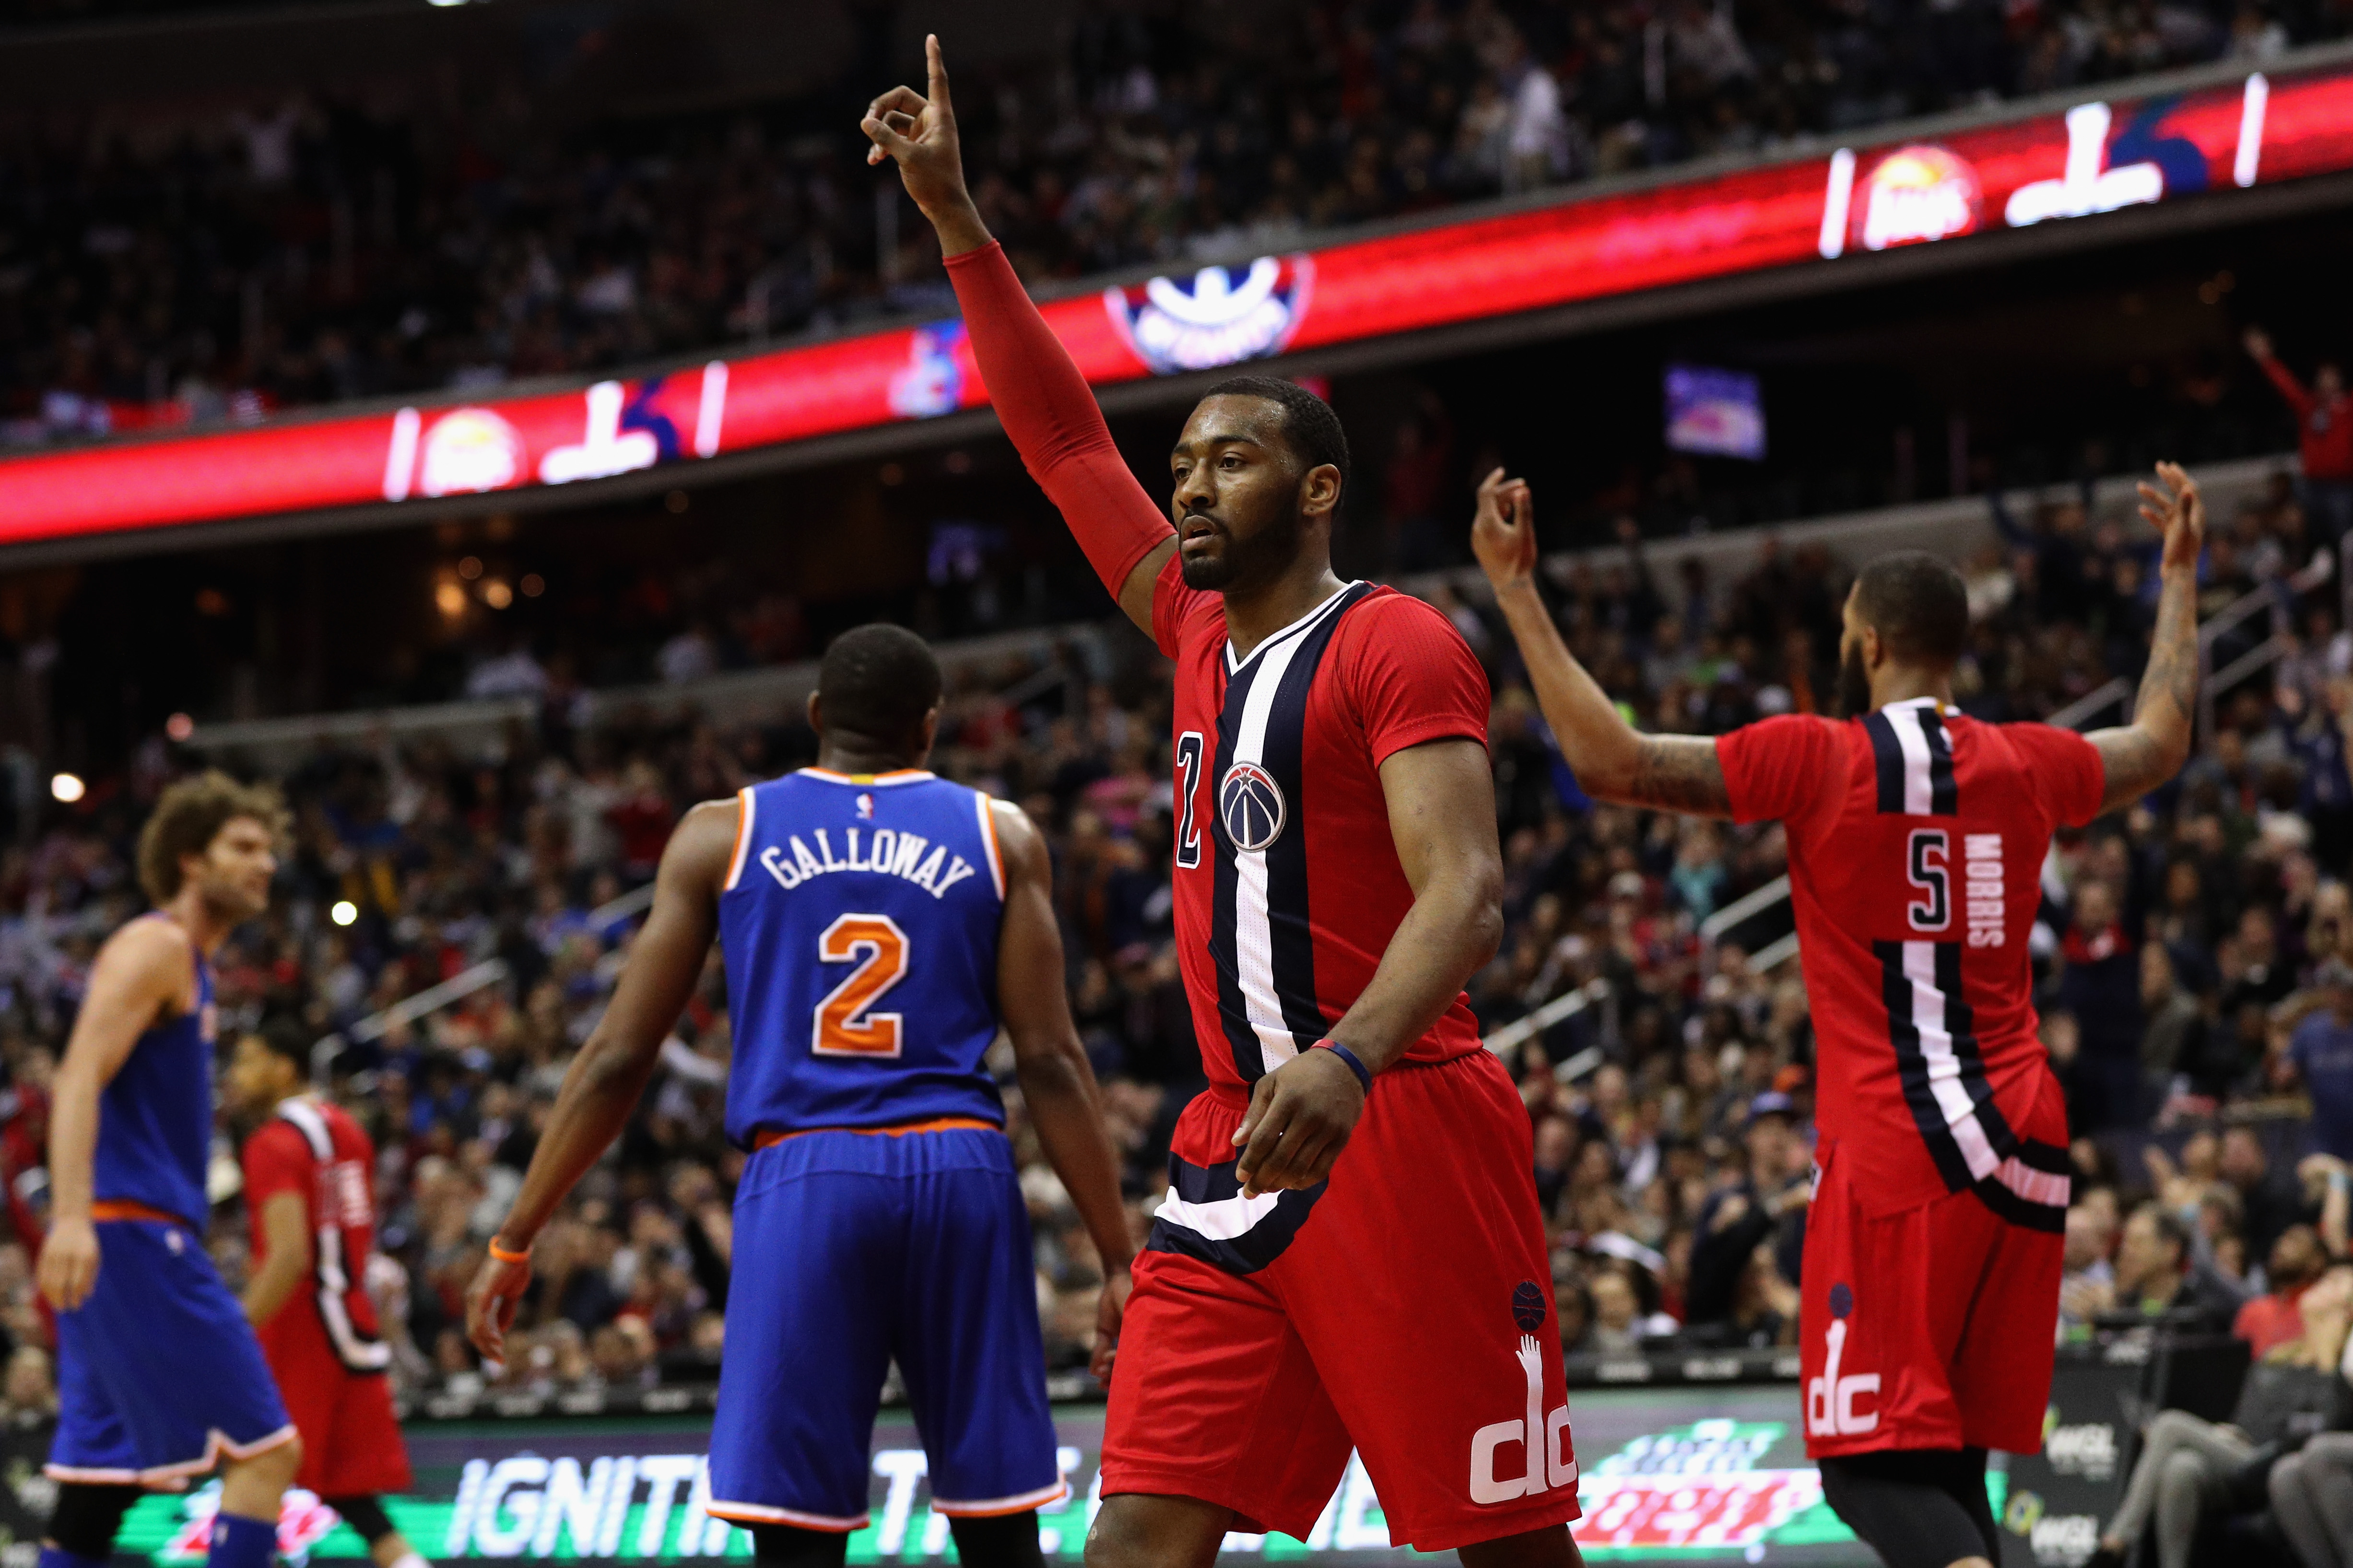 WASHINGTON, DC - MARCH 19: John Wall #2 of the Washington Wizards celebrates after the Wizards scored in the closing mintues of their 99-89 win over the New York Knicks at Verizon Center on March 19, 2016 in Washington, DC. (Photo by Rob Carr/Getty Images